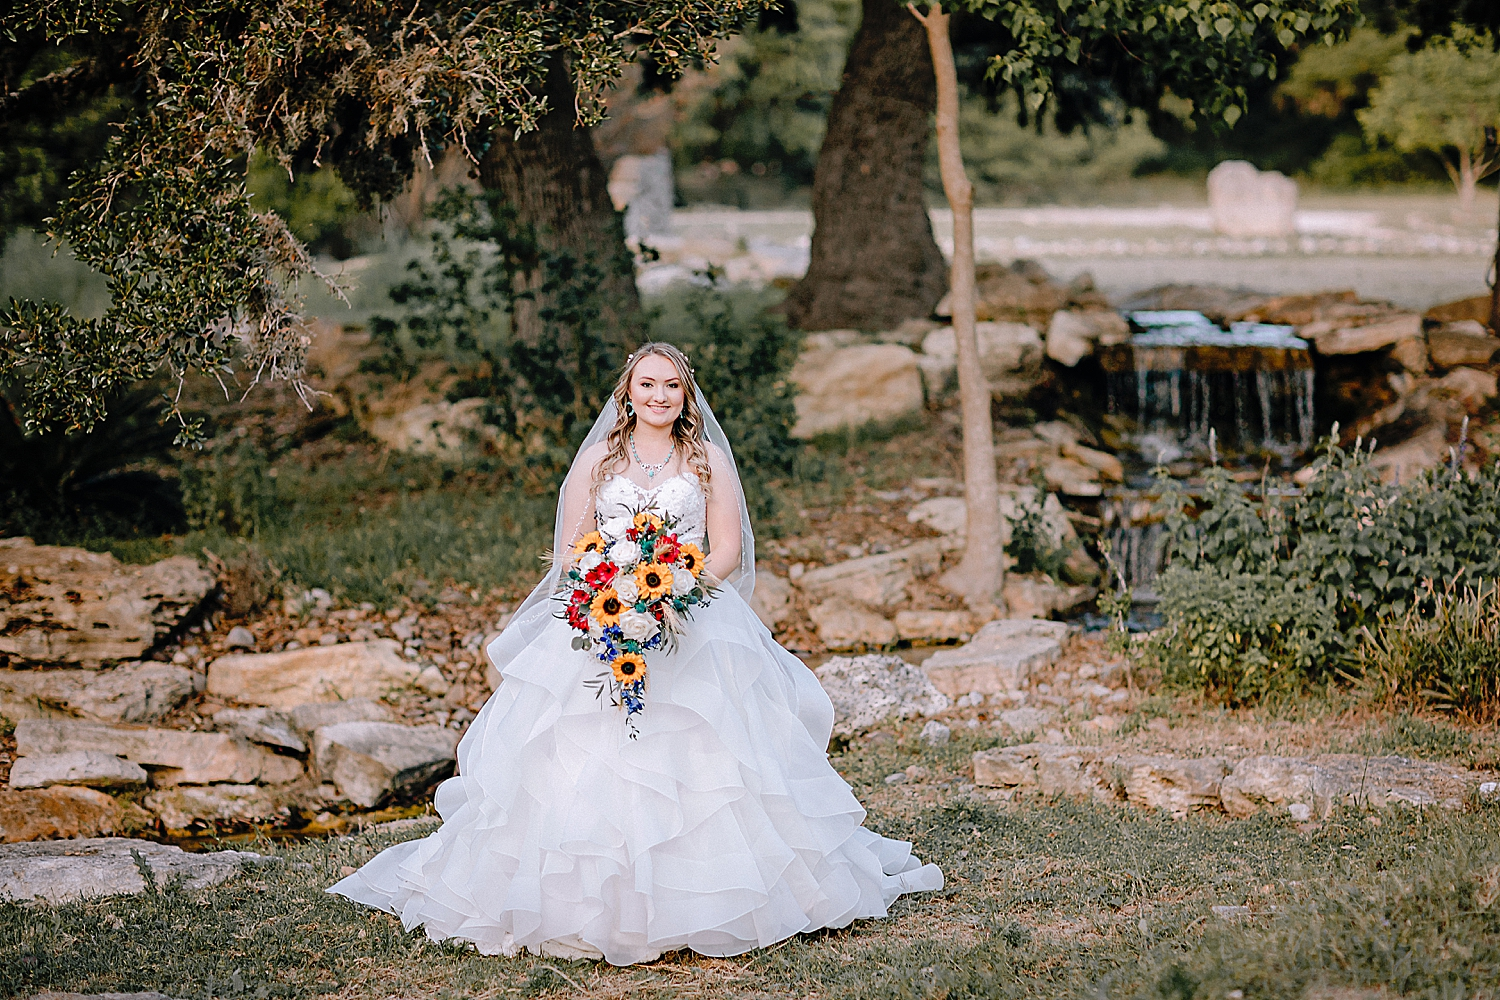 Carly-Barton-Photography-Texas-Bridals-Boerne-Rustic-Wedding-Photos_0020.jpg